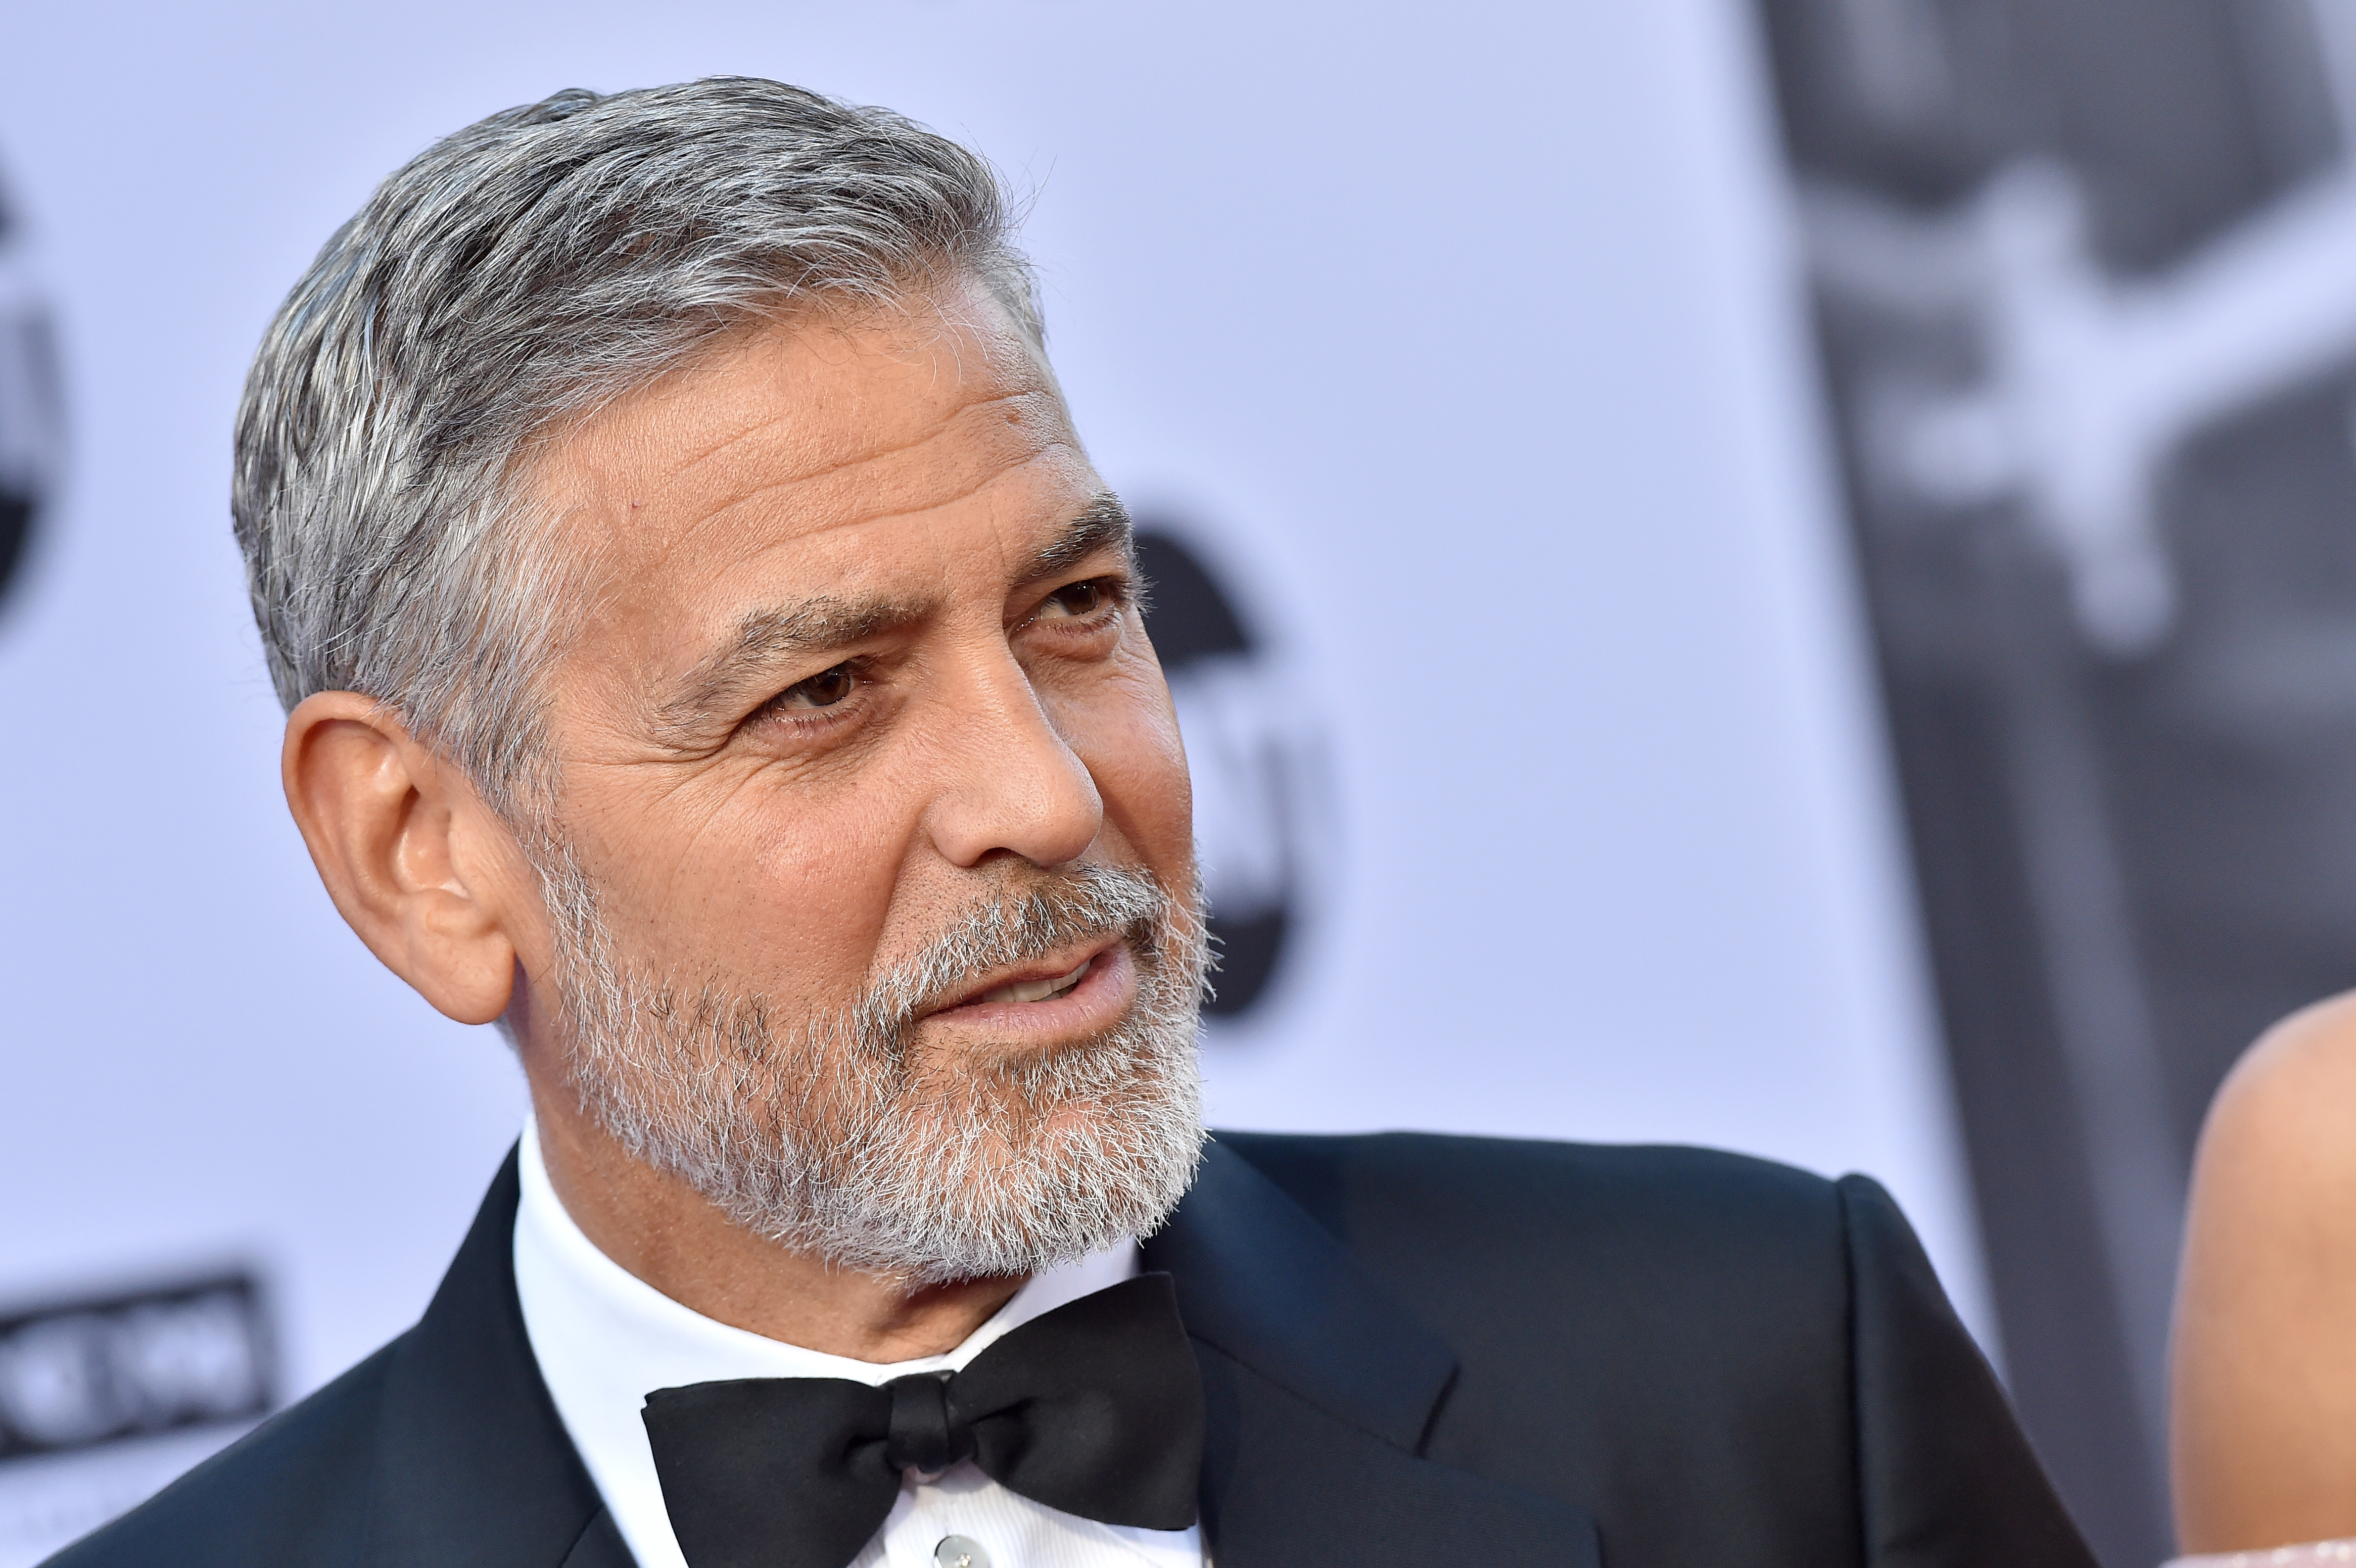 George Clooney posing for a pictur at premiere, wearing a suit with a bow tie